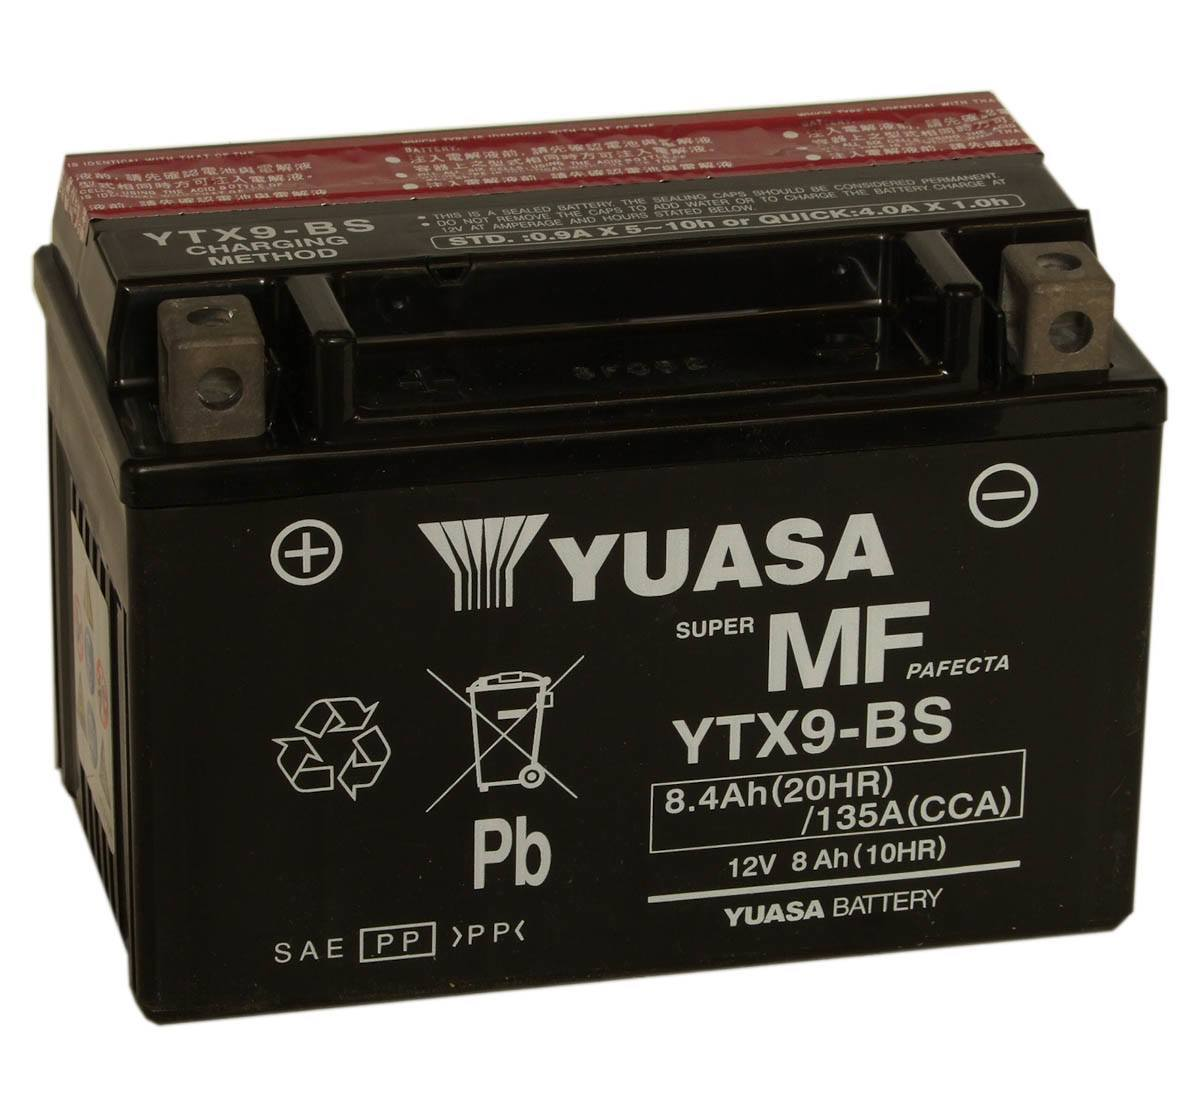 Get it delivered to your door - Yuasa YTX9-BS Battery (USA) - 1970 (EGP)